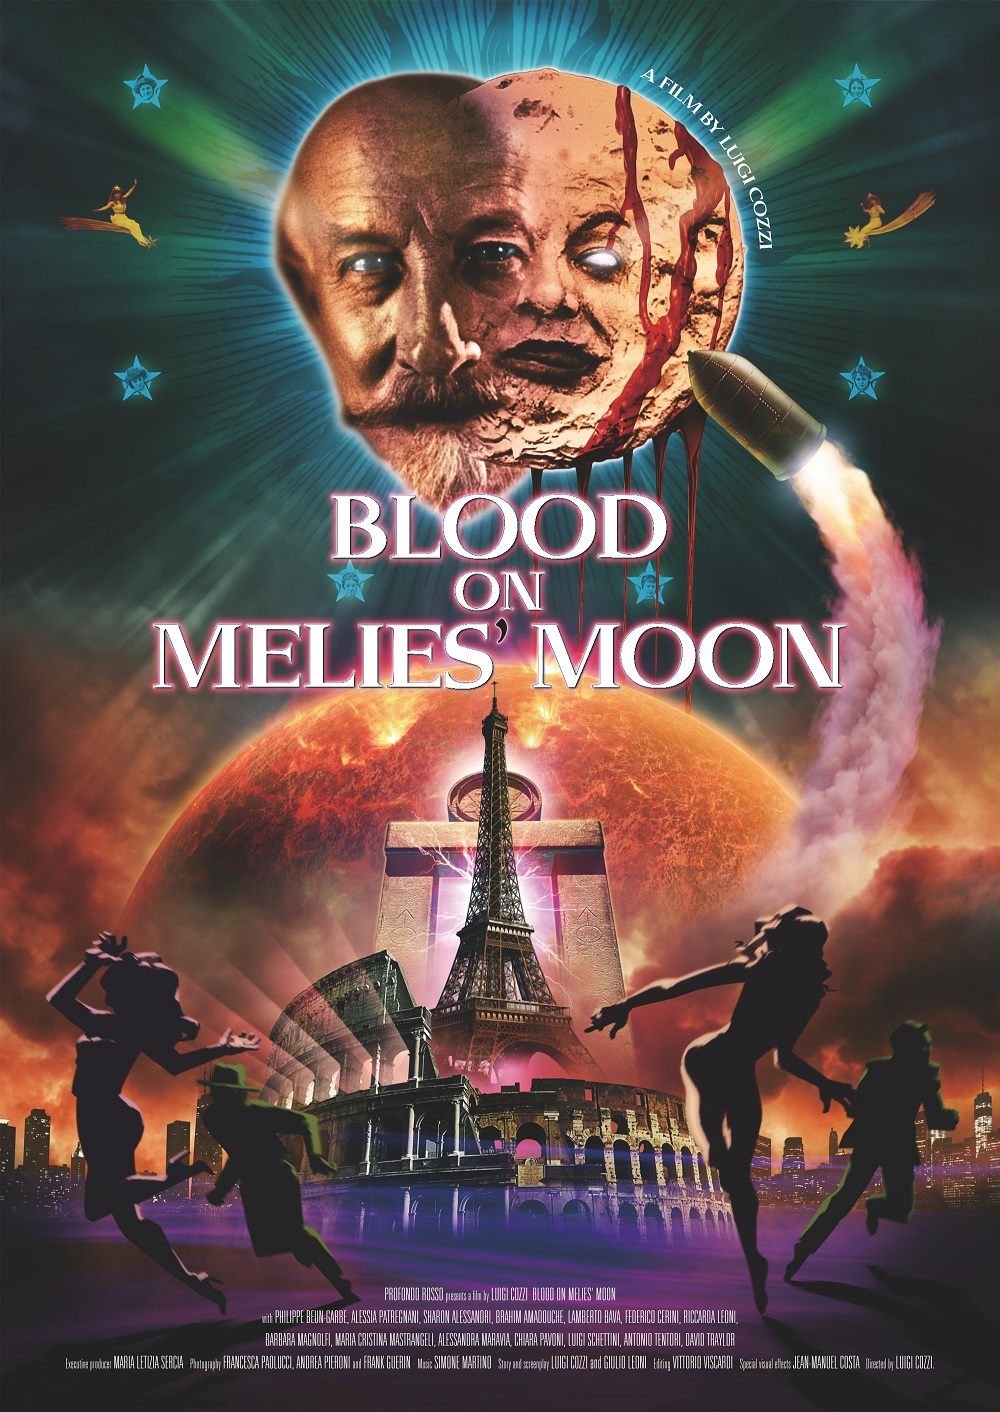 Blood on Melies Moon peq